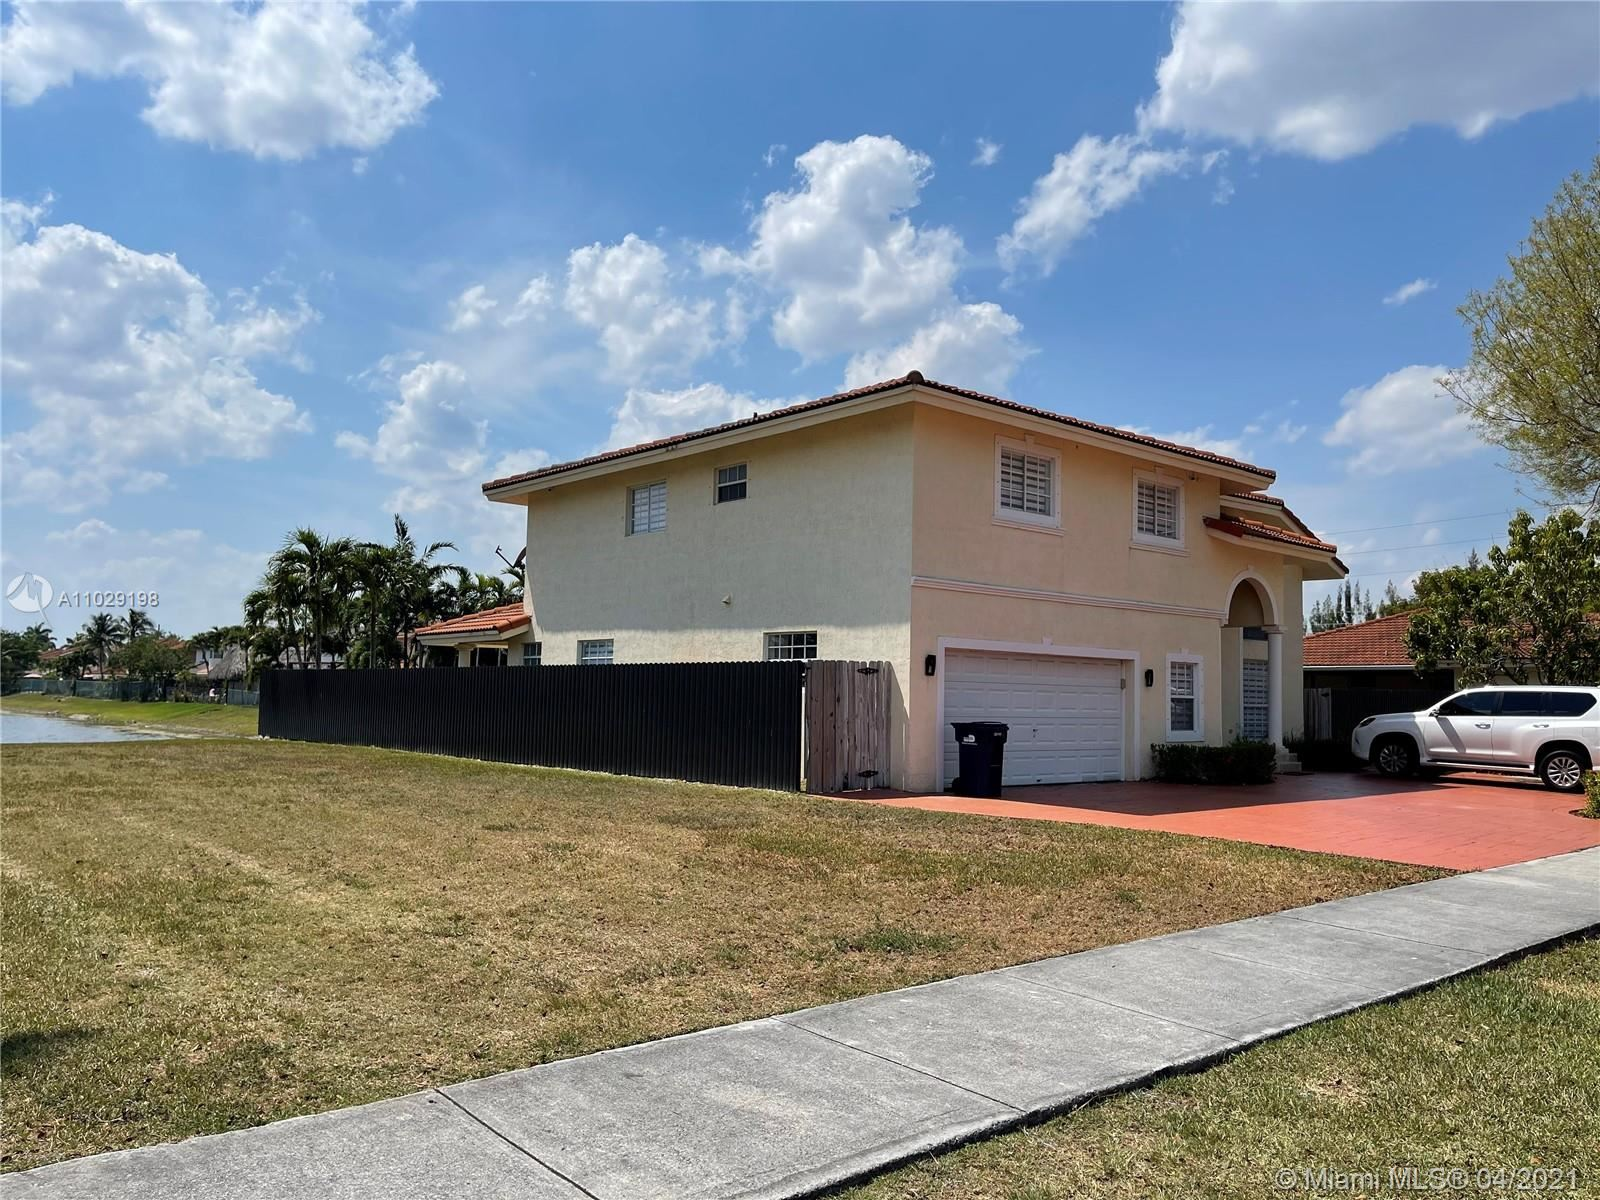 4232 SW 159th Ave, Miami, FL 33185 - #: A11029198